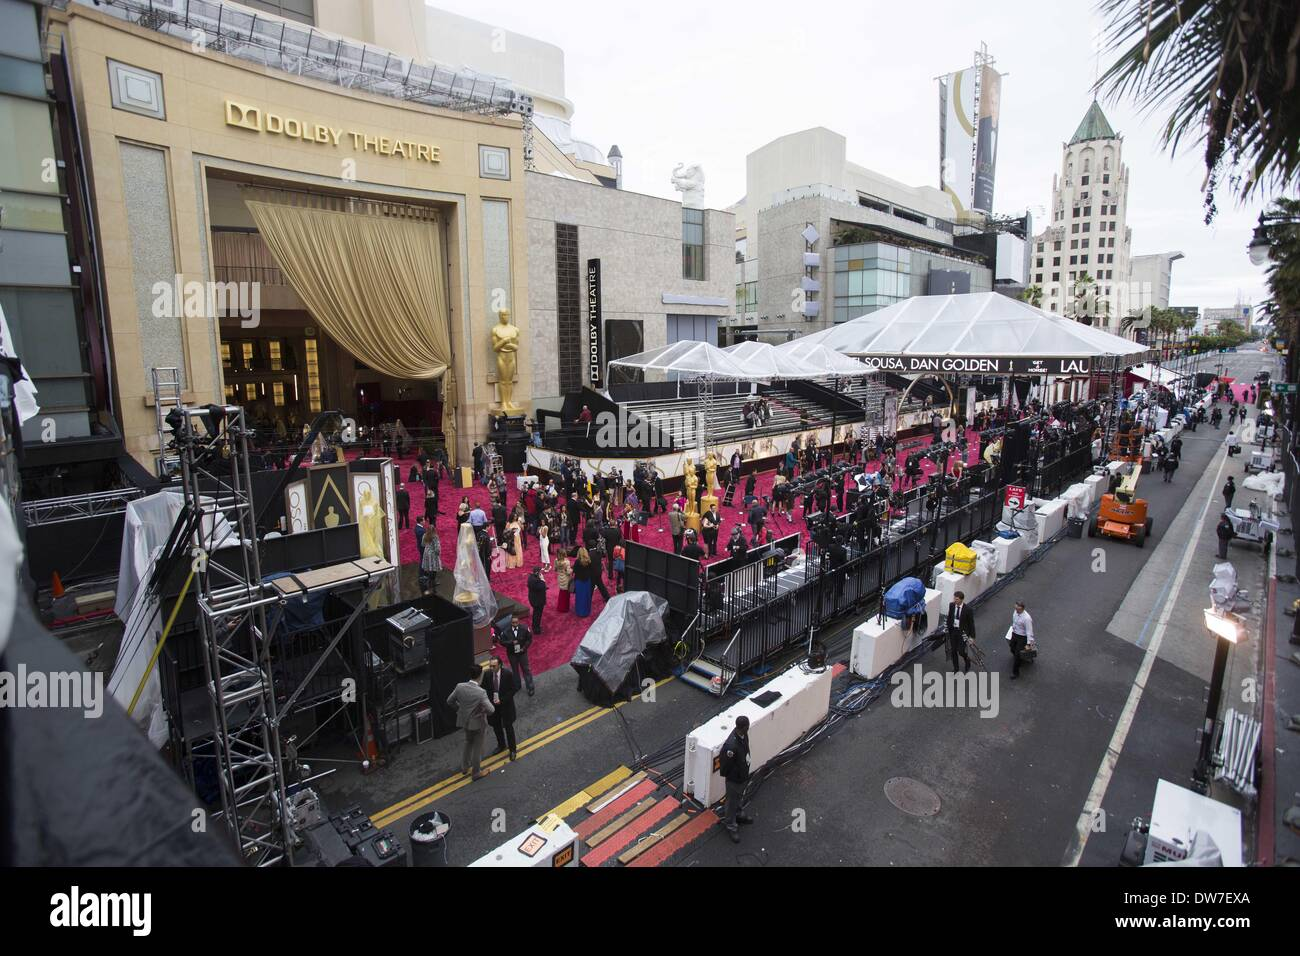 Los Angeles, California, U.S. 2nd March, 2014. A view of the red carpet arrival area outside of the Dolby Theater before the 86th Academy Awards in Los Angeles, Sunday, March 2, 2014. (Credit Image: Credit:  Ringo Chiu/ZUMAPRESS.com/Alamy Live News) - Stock Image